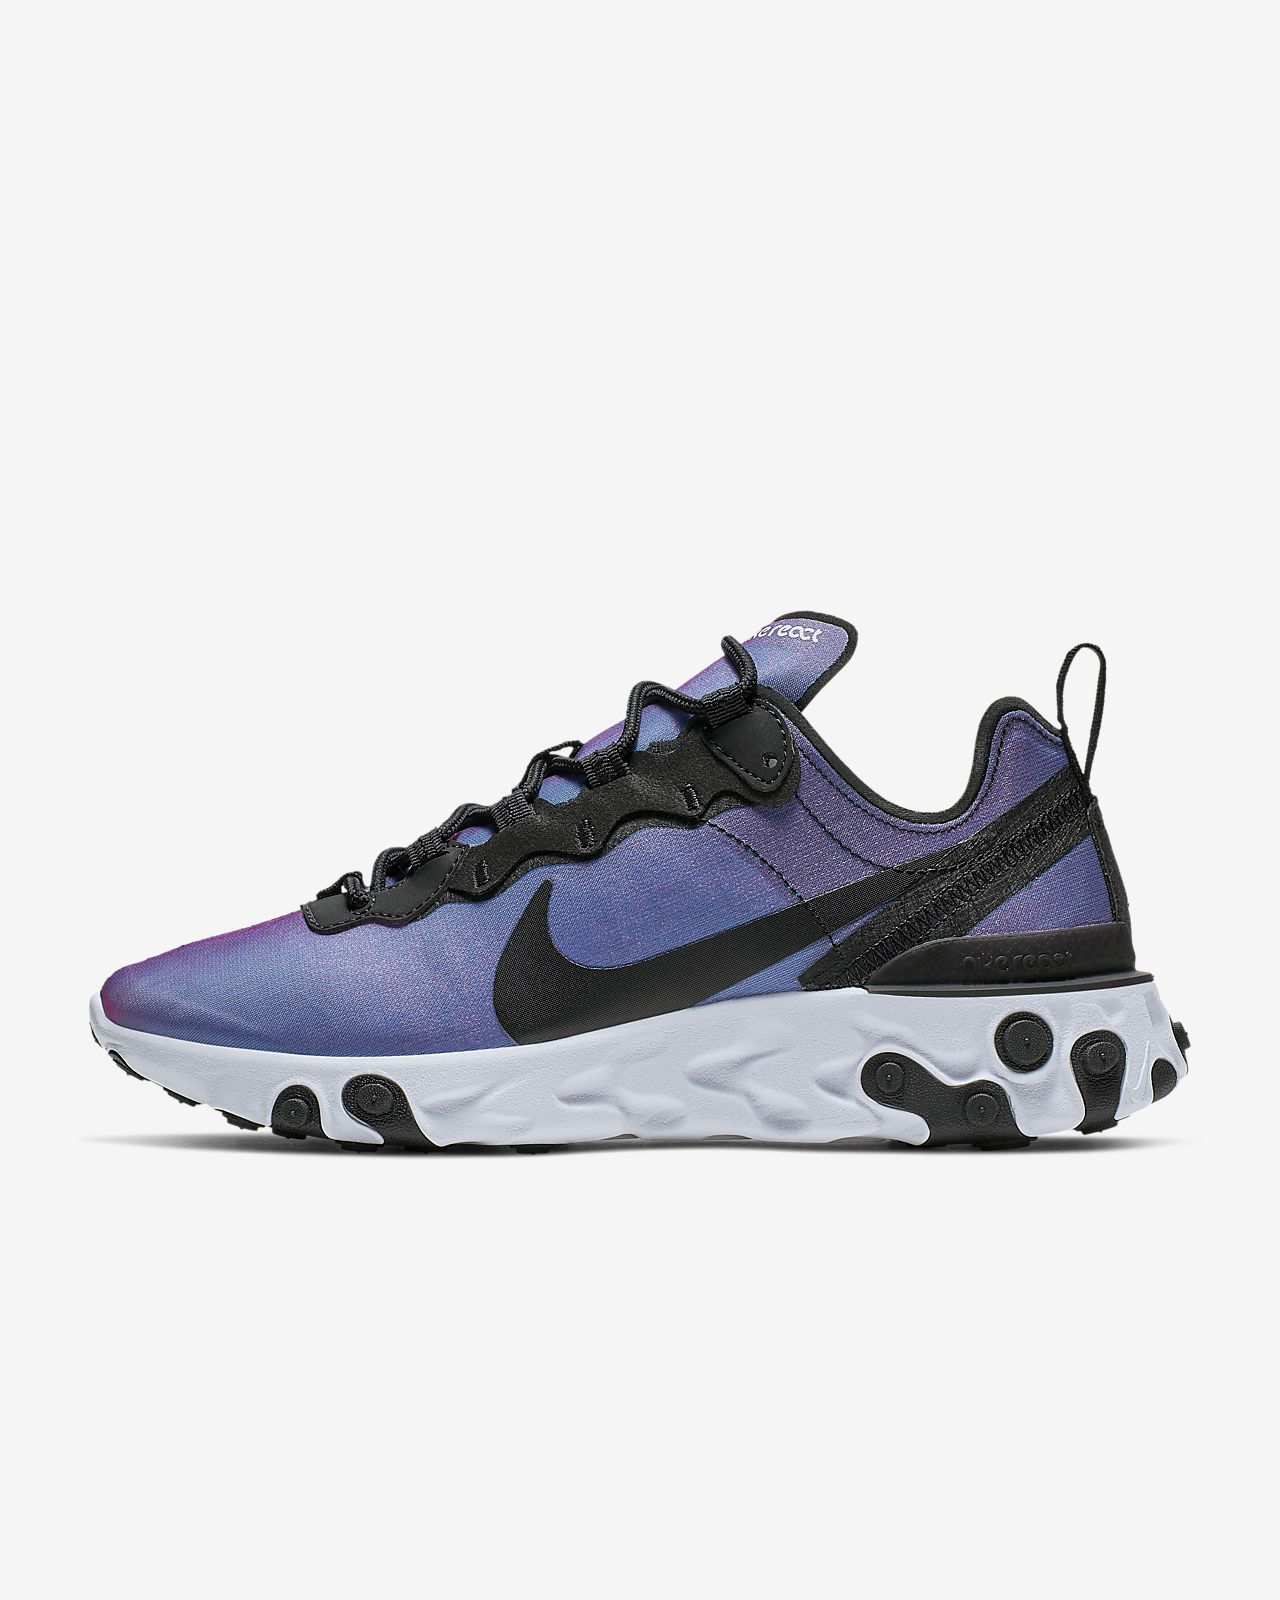 React 55 Pour Nike FemmeFr Chaussure Premium Element I7vf6ybgY